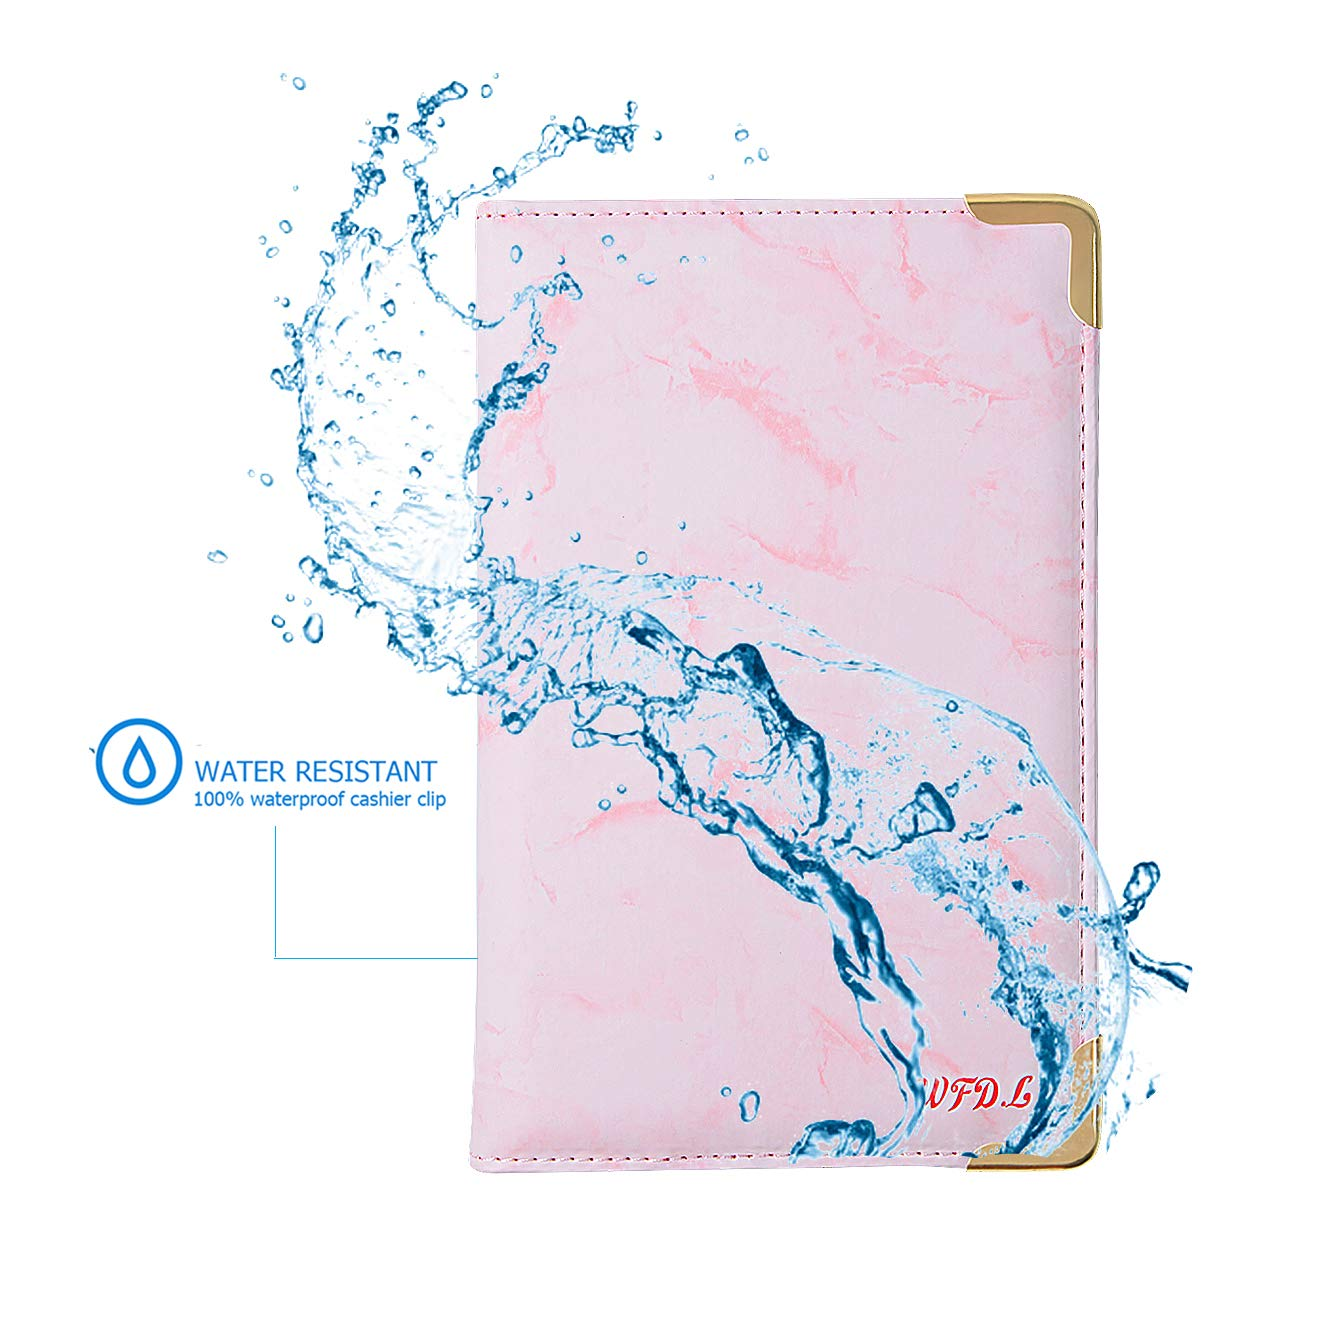 WFD.L Waitress Book Deluxe Server Wallet for Restaurant Waiter Waitress Waitstaff | 9 Pockets Includes Zipper Pocket with Pen Holder | Fits in Apron+Includ 50 Sheet Guest Check Pads (Marble Pink) by WFD.L (Image #5)